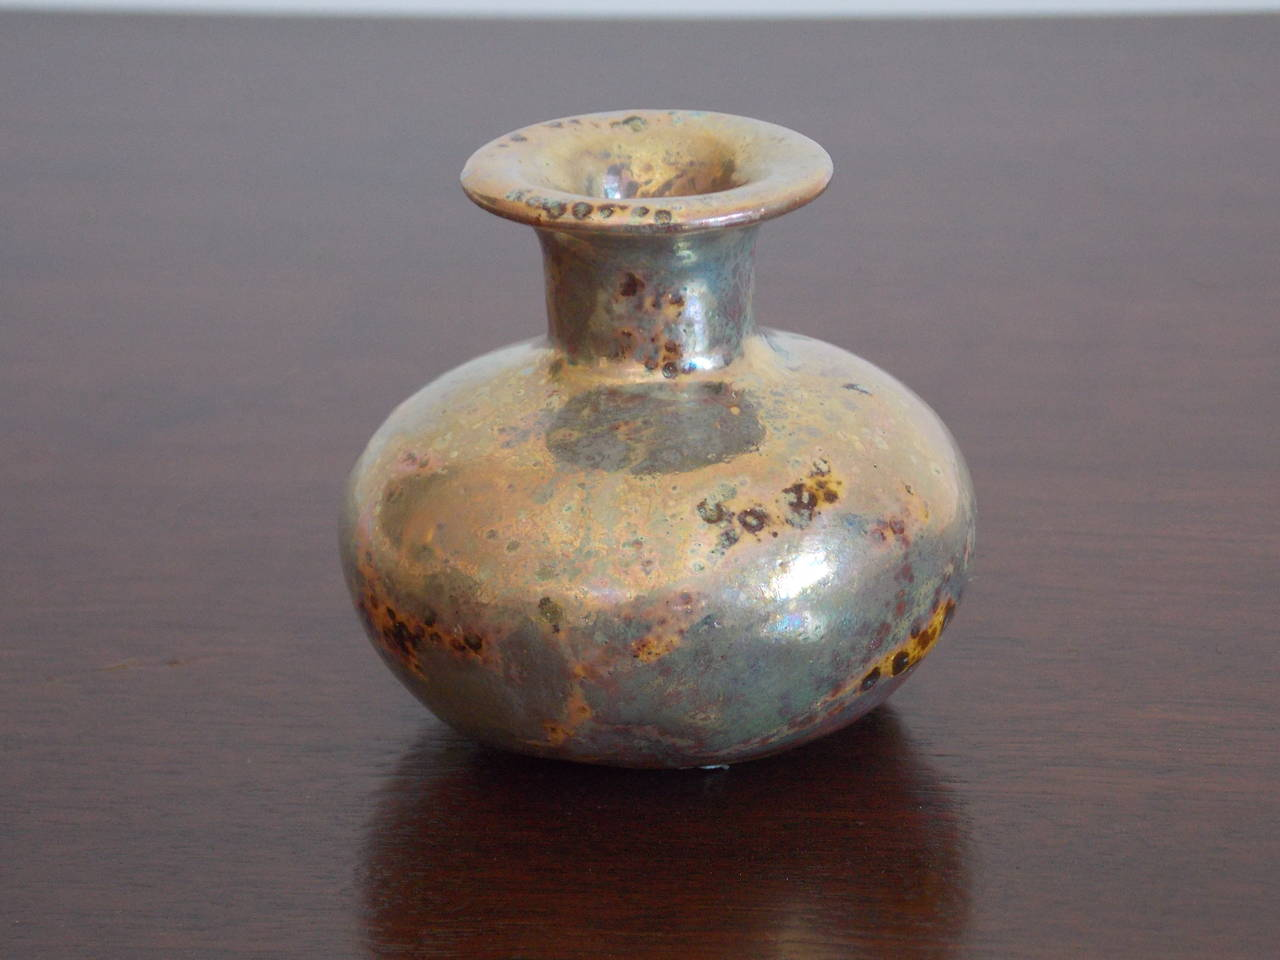 20th Century Beatrice Wood Studio Pottery Weed Vase with Iridescent Glaze  For Sale